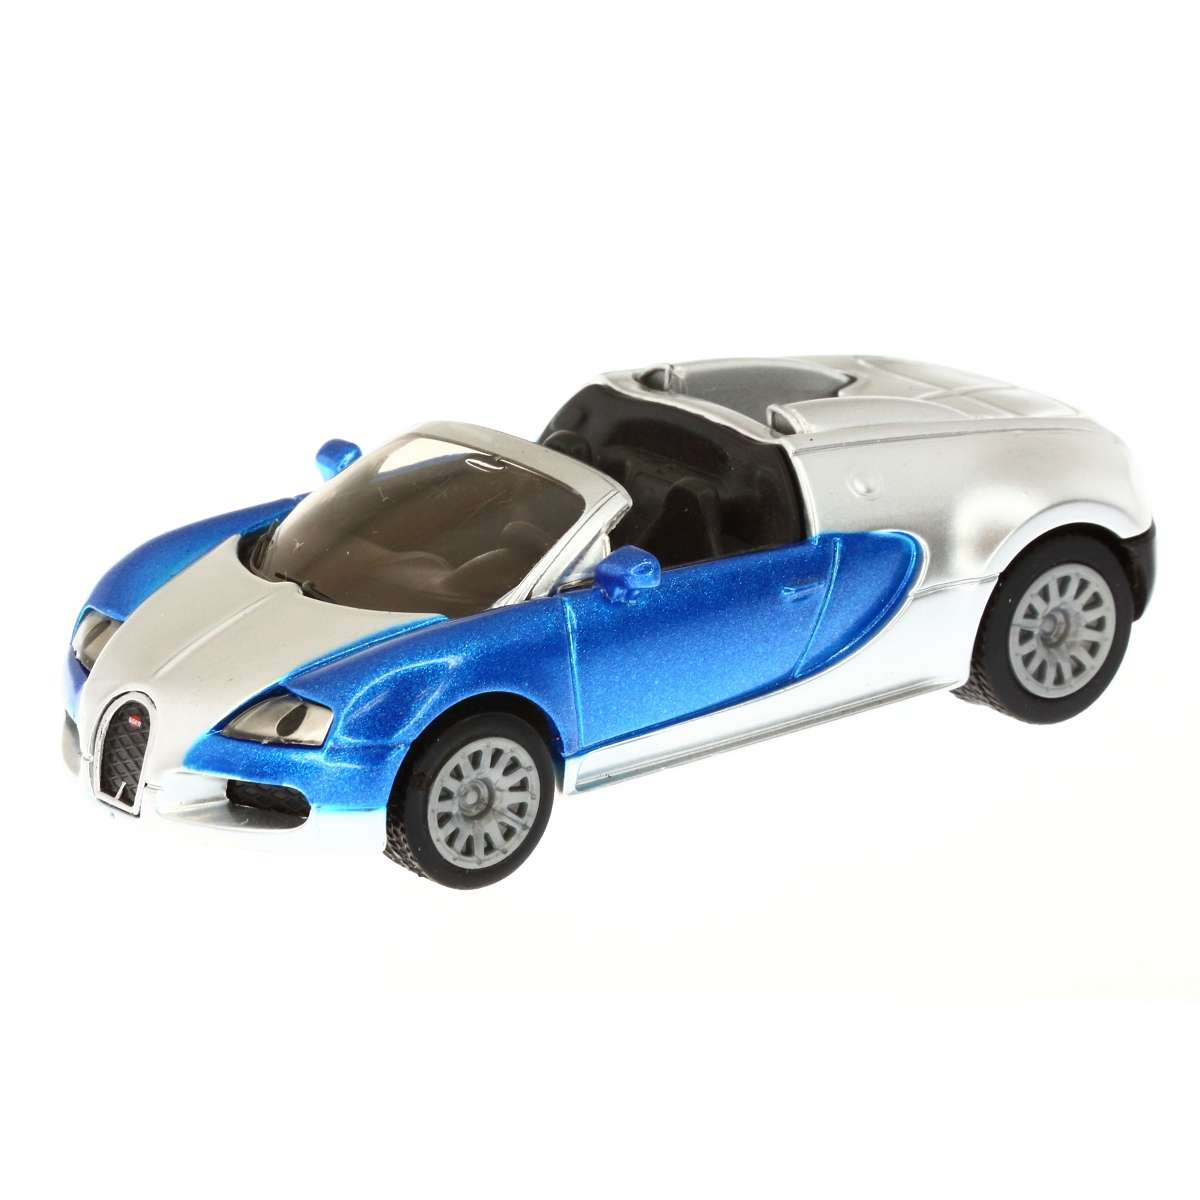 Siku 1353 Bugatti Veyron Grand Sport Car